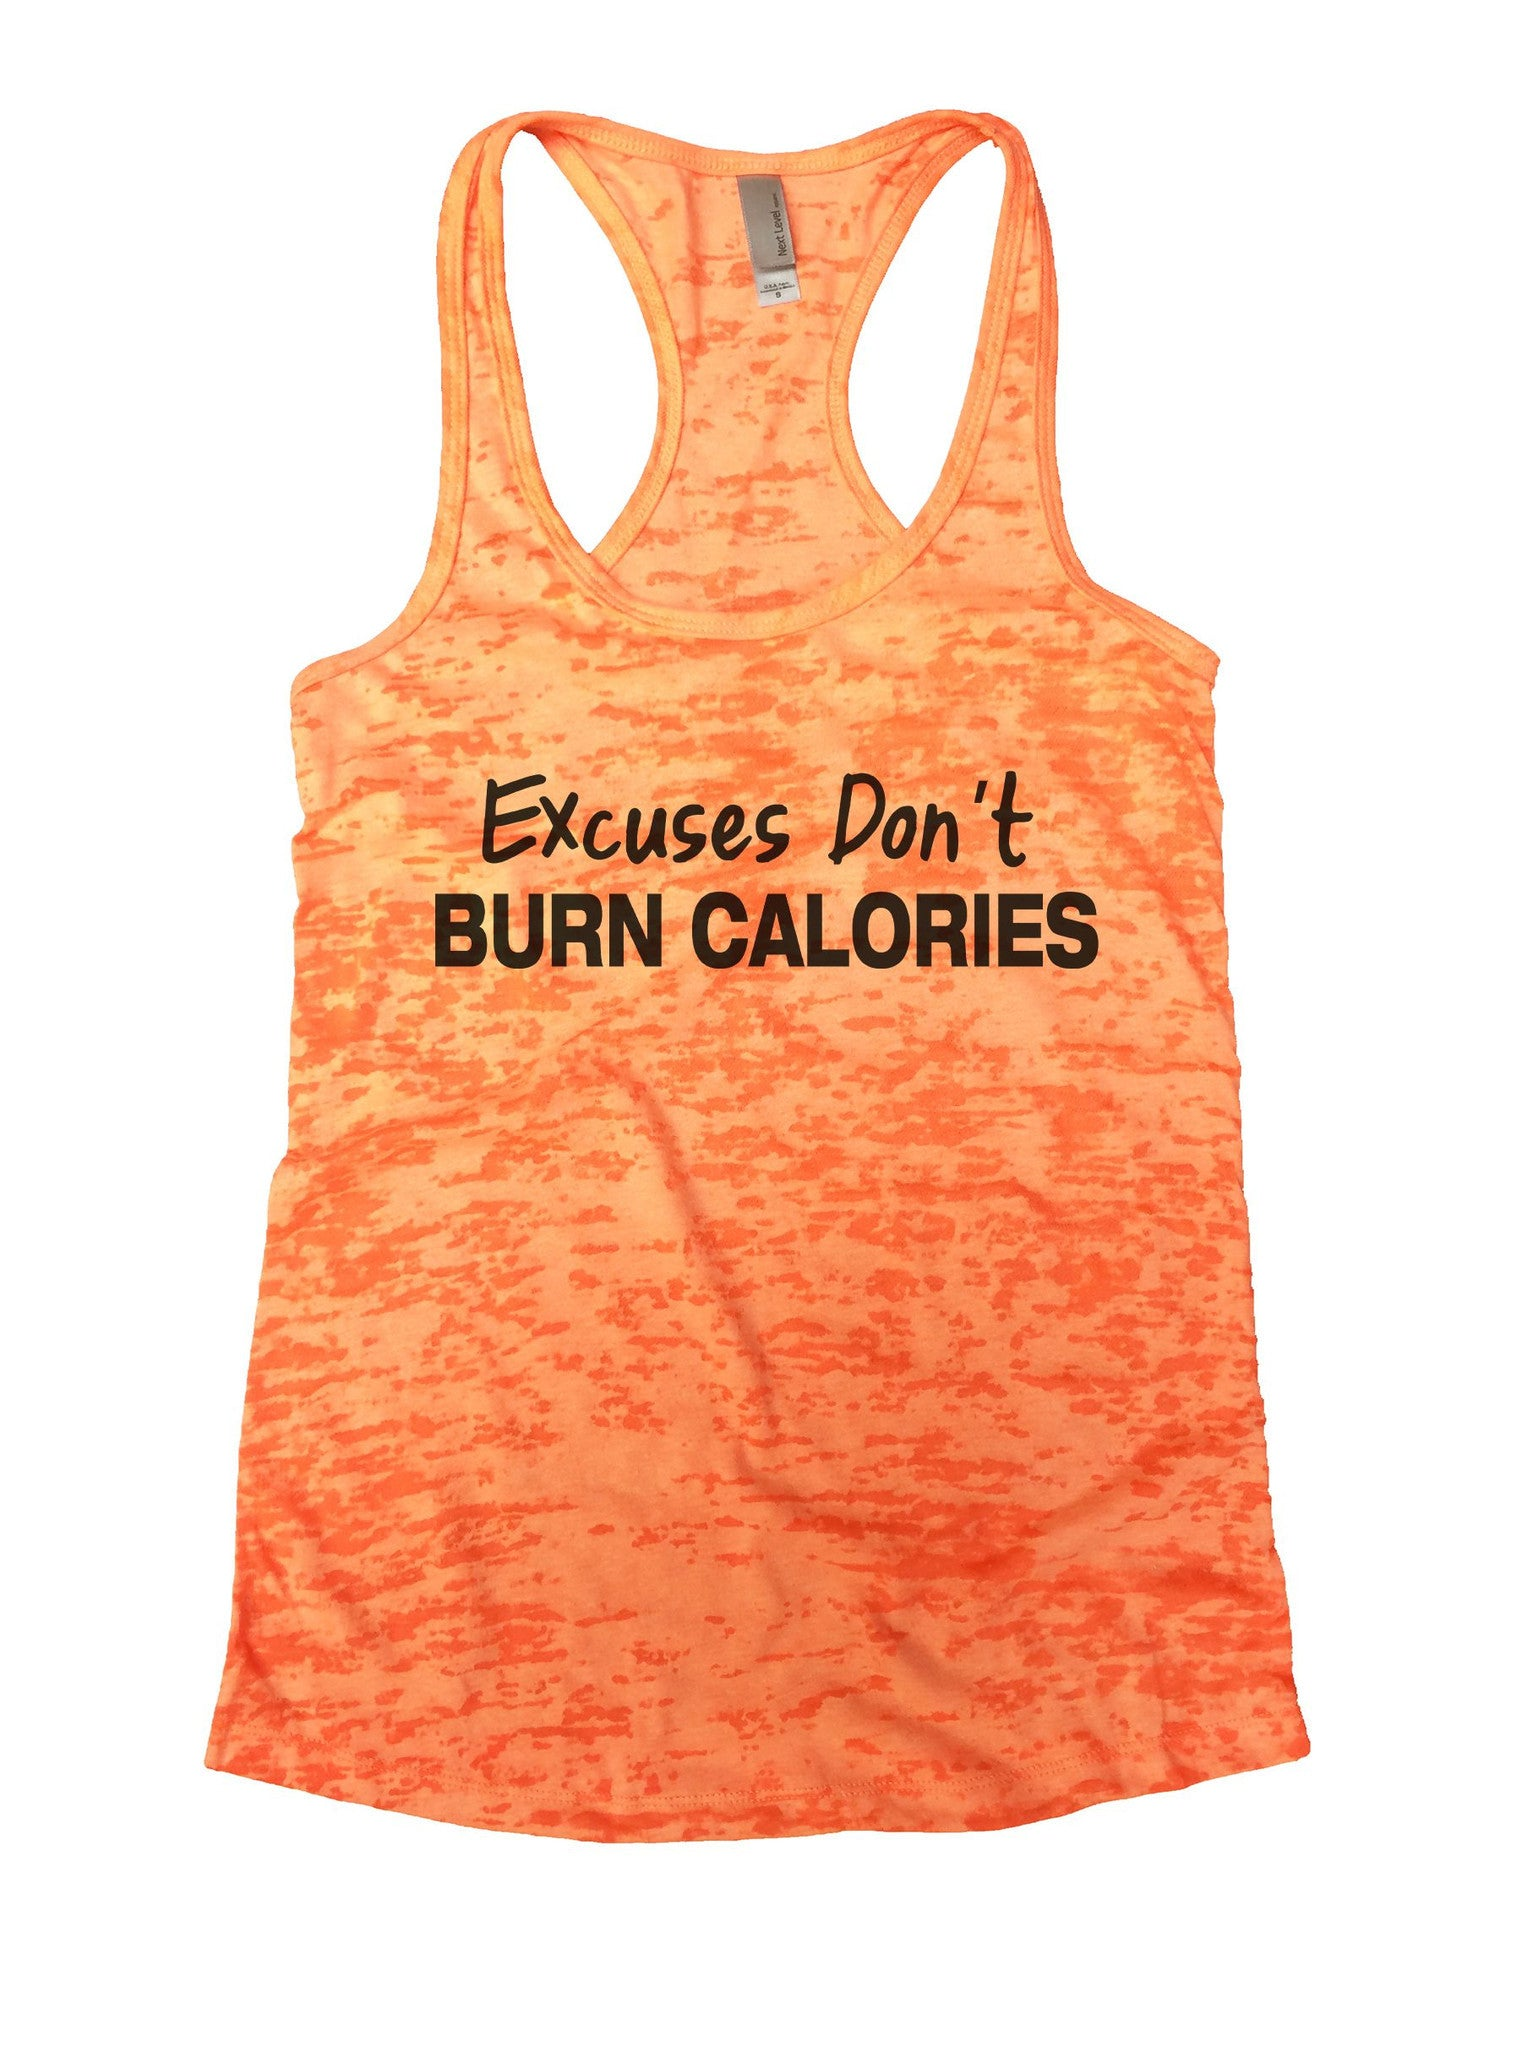 Excuses Don't Burn Calories Burnout Tank Top By BurnoutTankTops.com - 843 - Funny Shirts Tank Tops Burnouts and Triblends  - 3